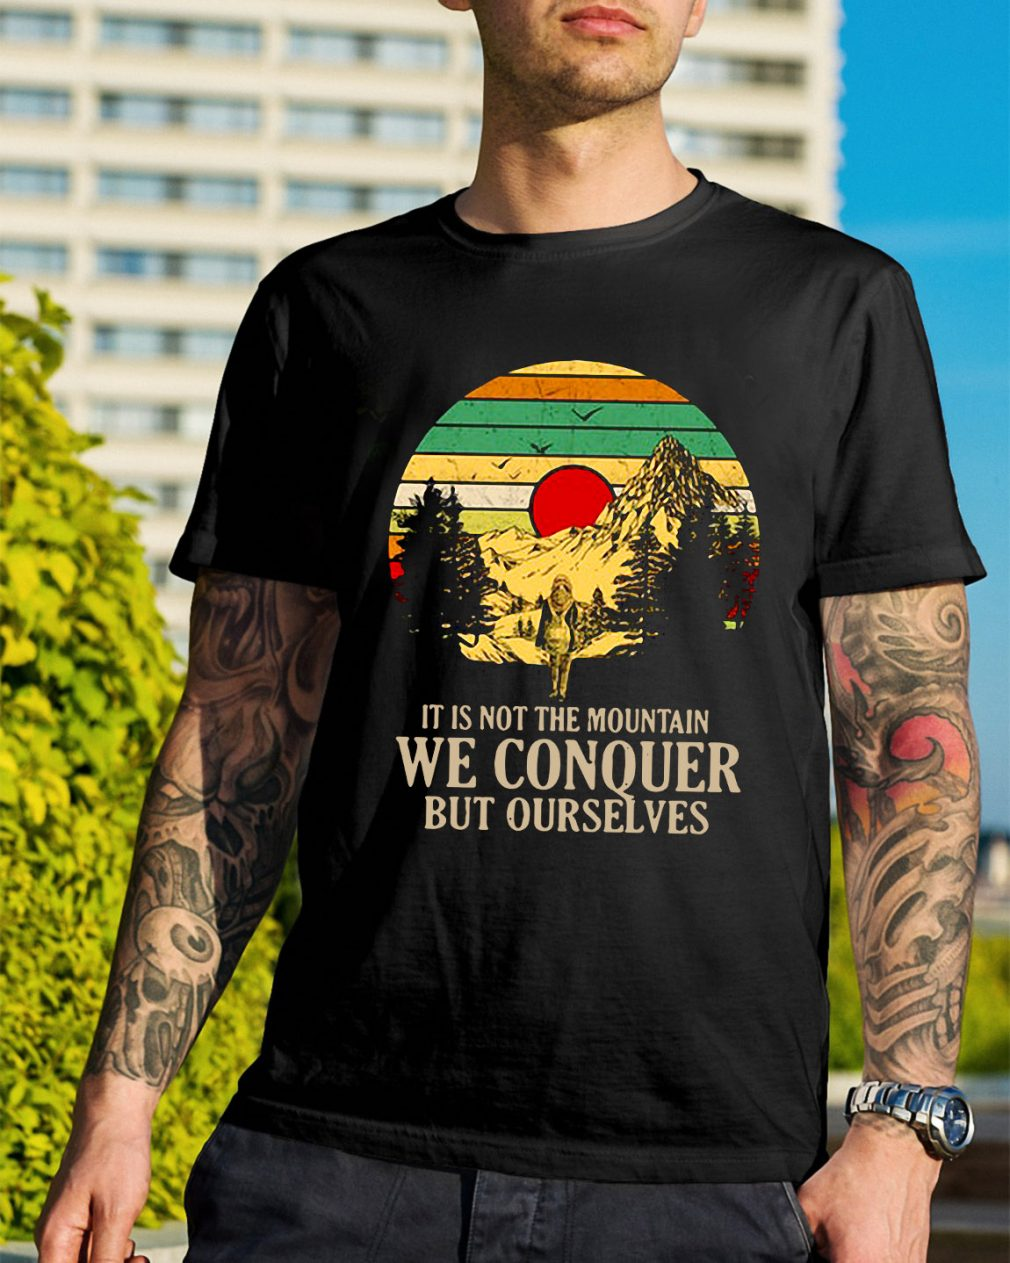 It is not the mountain we conquer but ourselves shirt